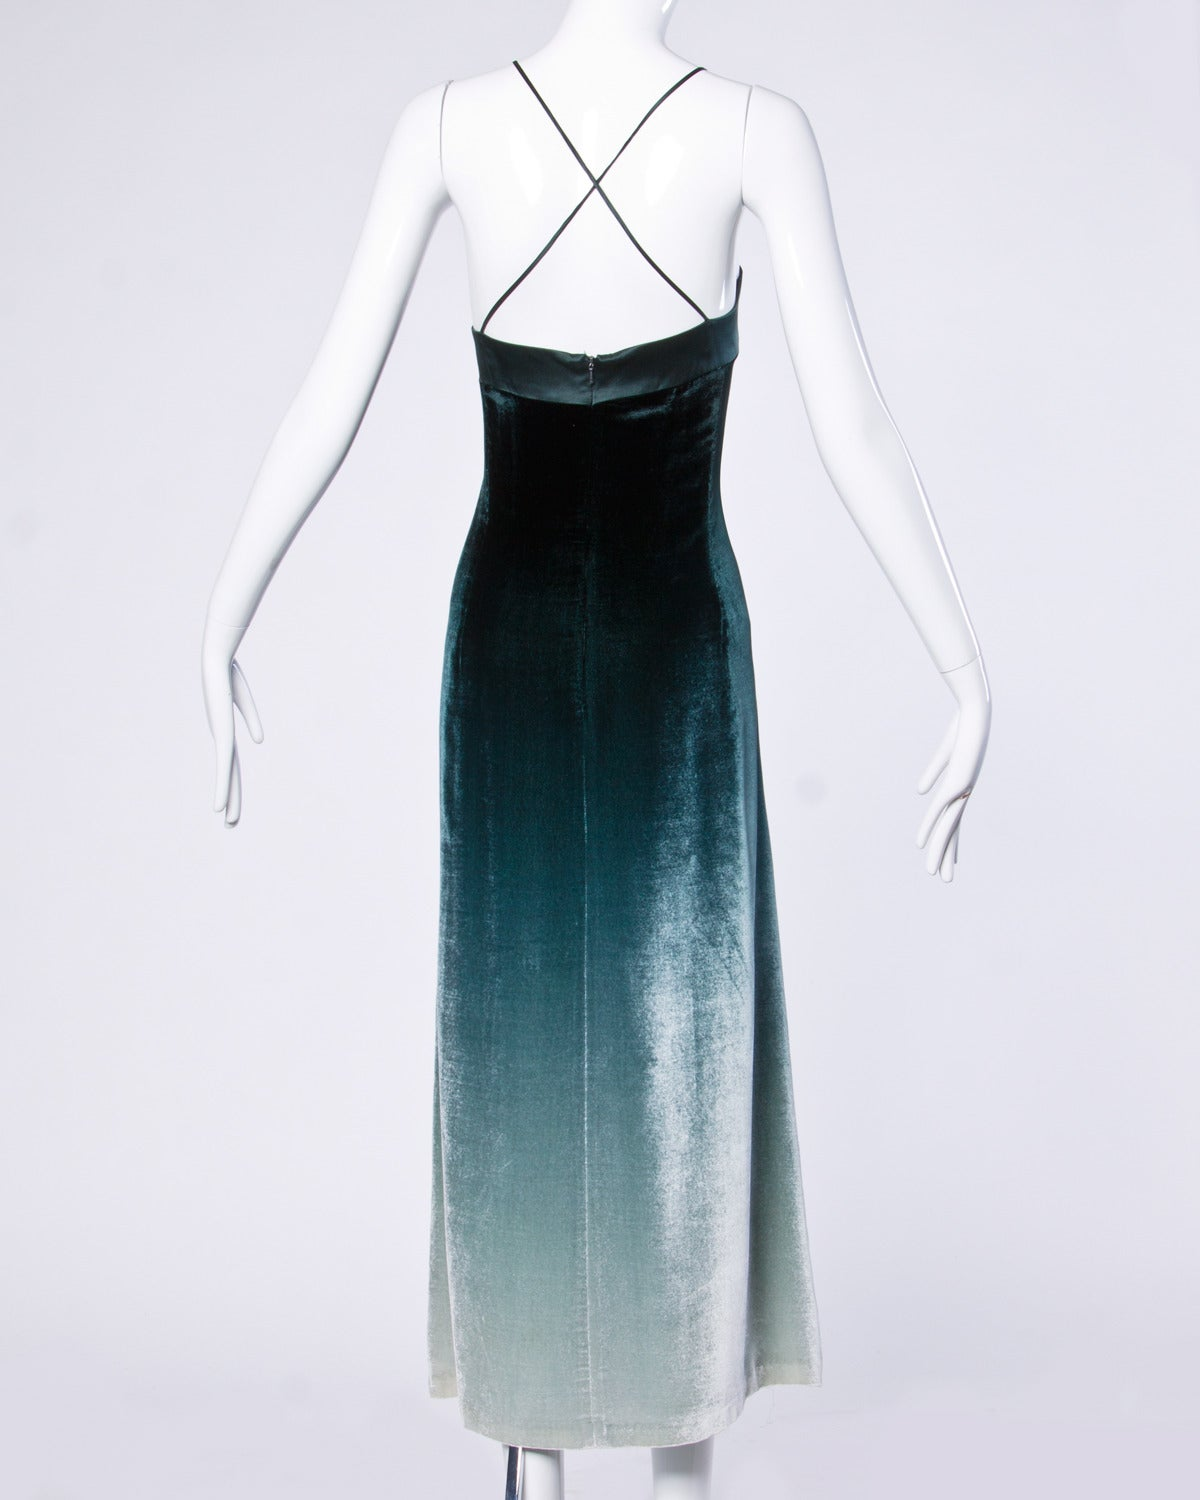 Emanuel Ungaro Plus-Size Green Ombre Silk Velvet Maxi Dress Size XL In Excellent Condition For Sale In Sparks, NV